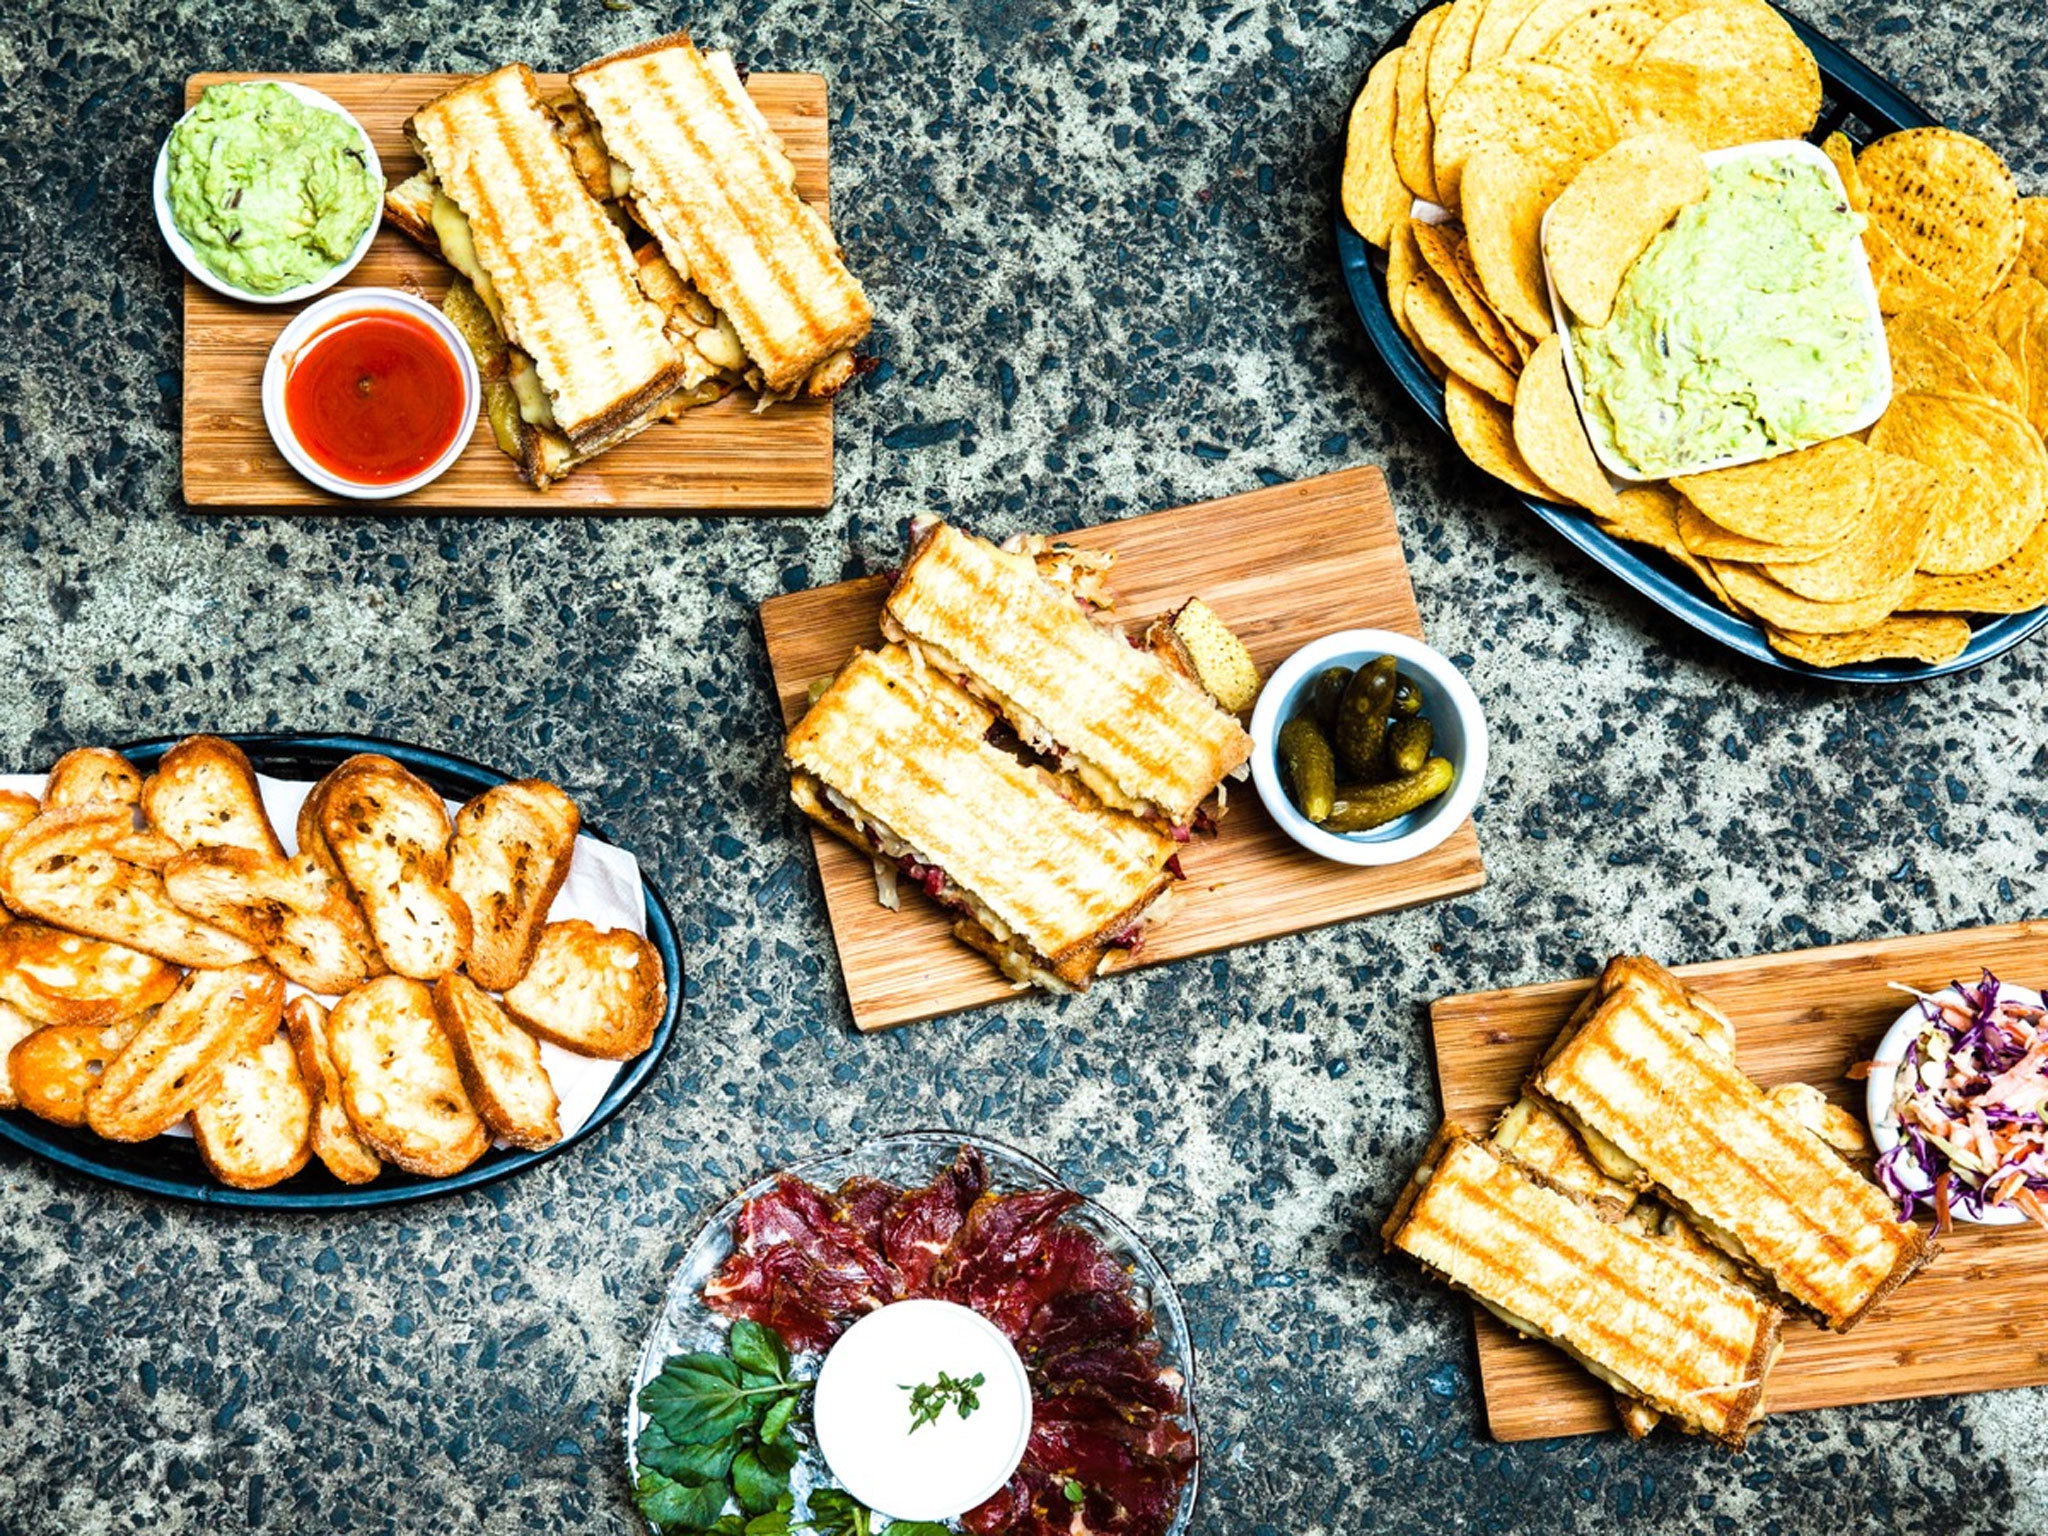 toasties, cornchips and guacamole on a table